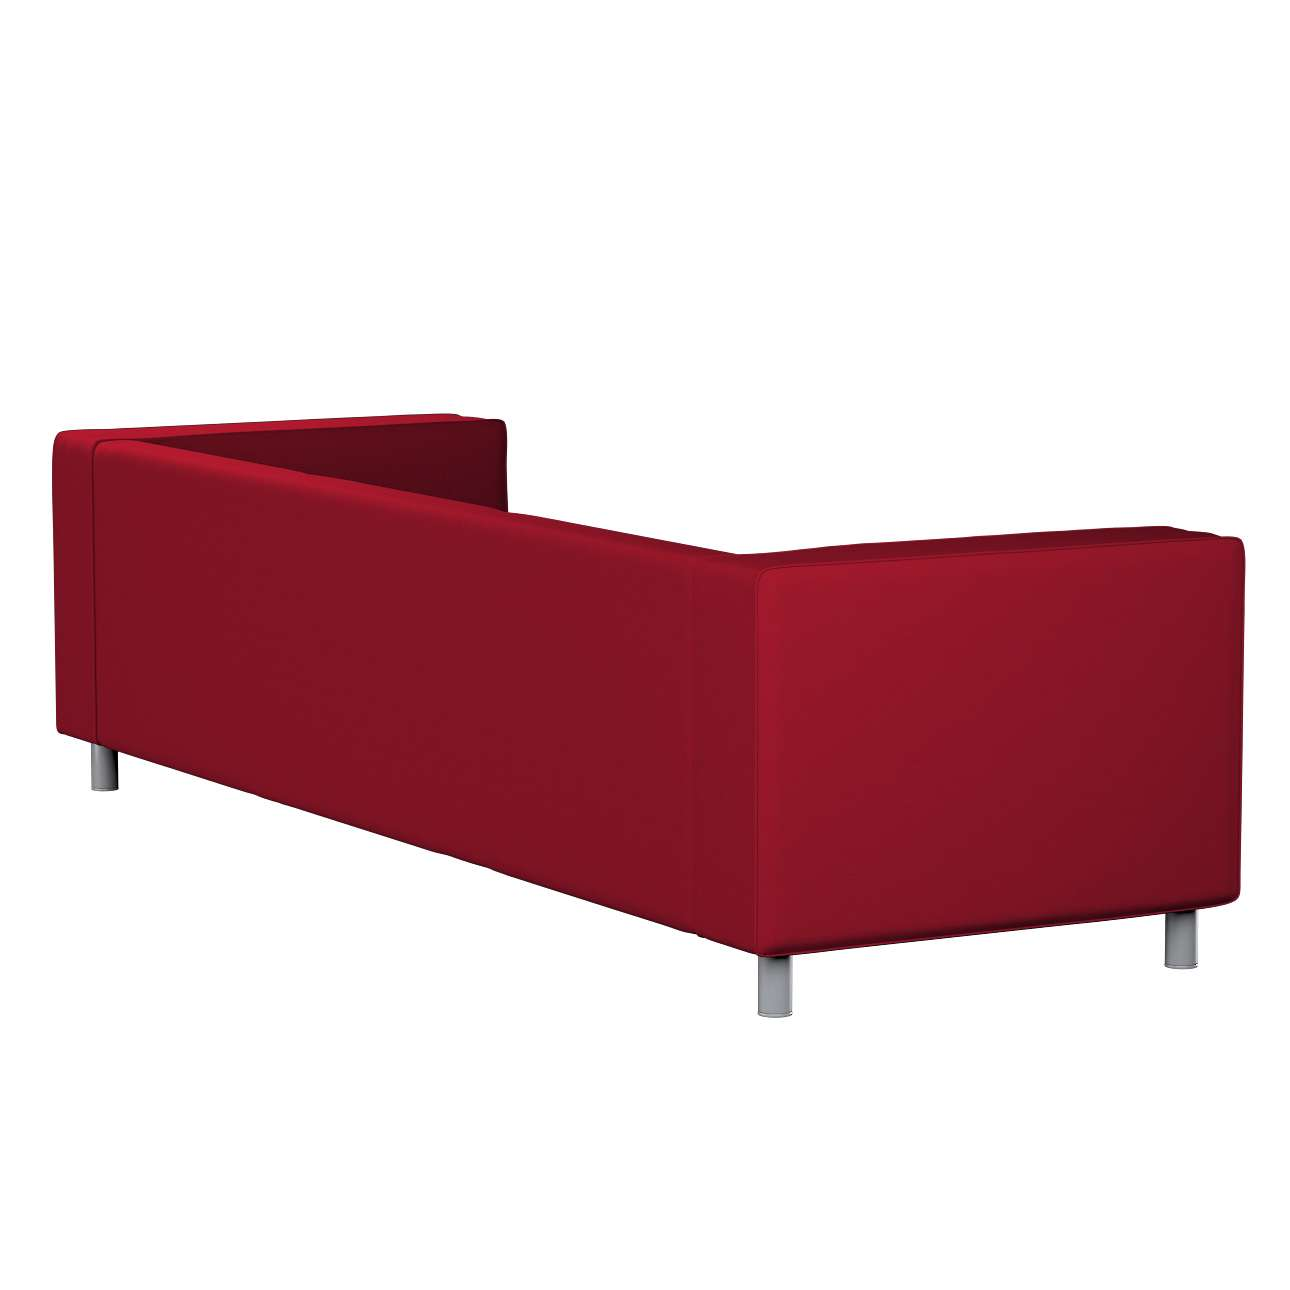 Klippan Sessel Klippan Sofa Bezug Rot Awesome Home